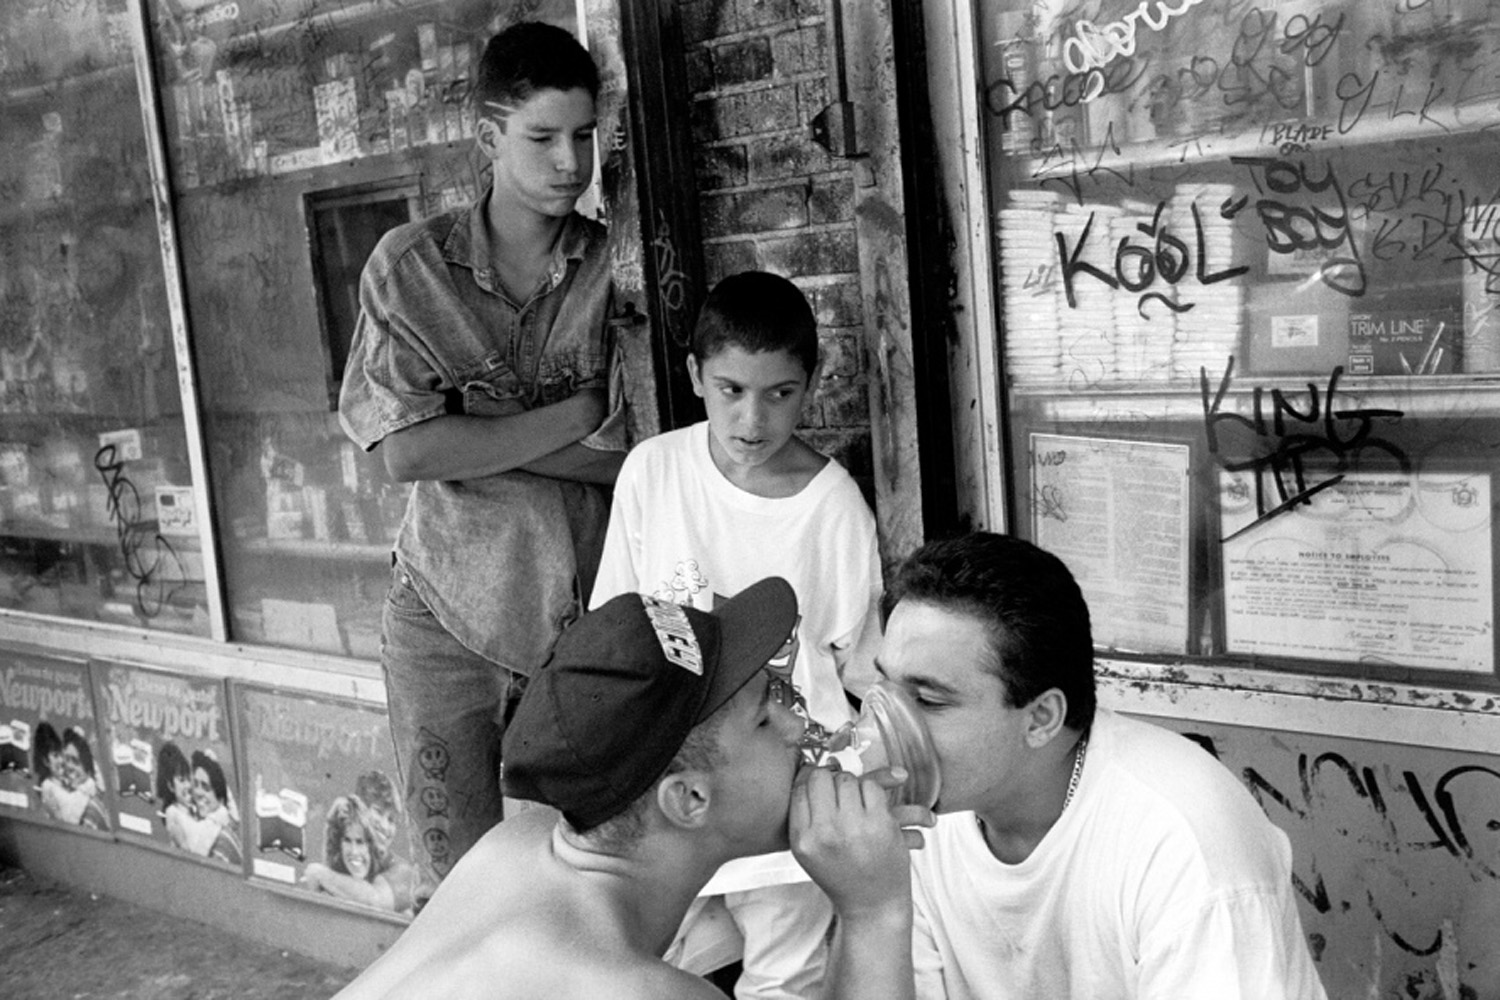 Getting high, from Bronx Boys (FotoEvidence, 2011) by Stephen Shames.